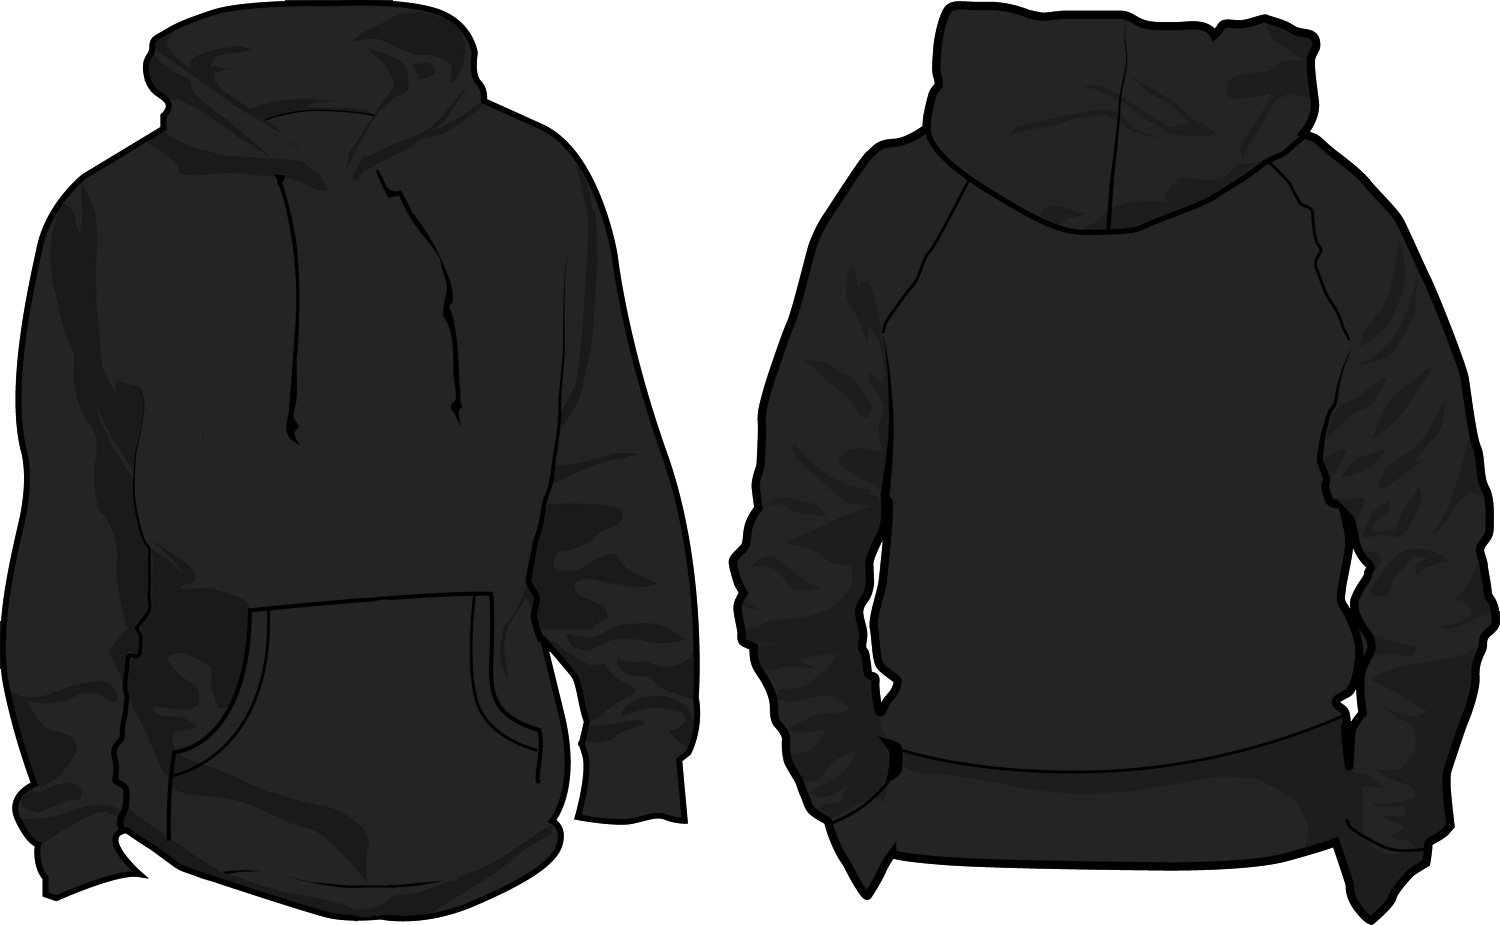 Free zipper cliparts download. Hoodie clipart jacket outline